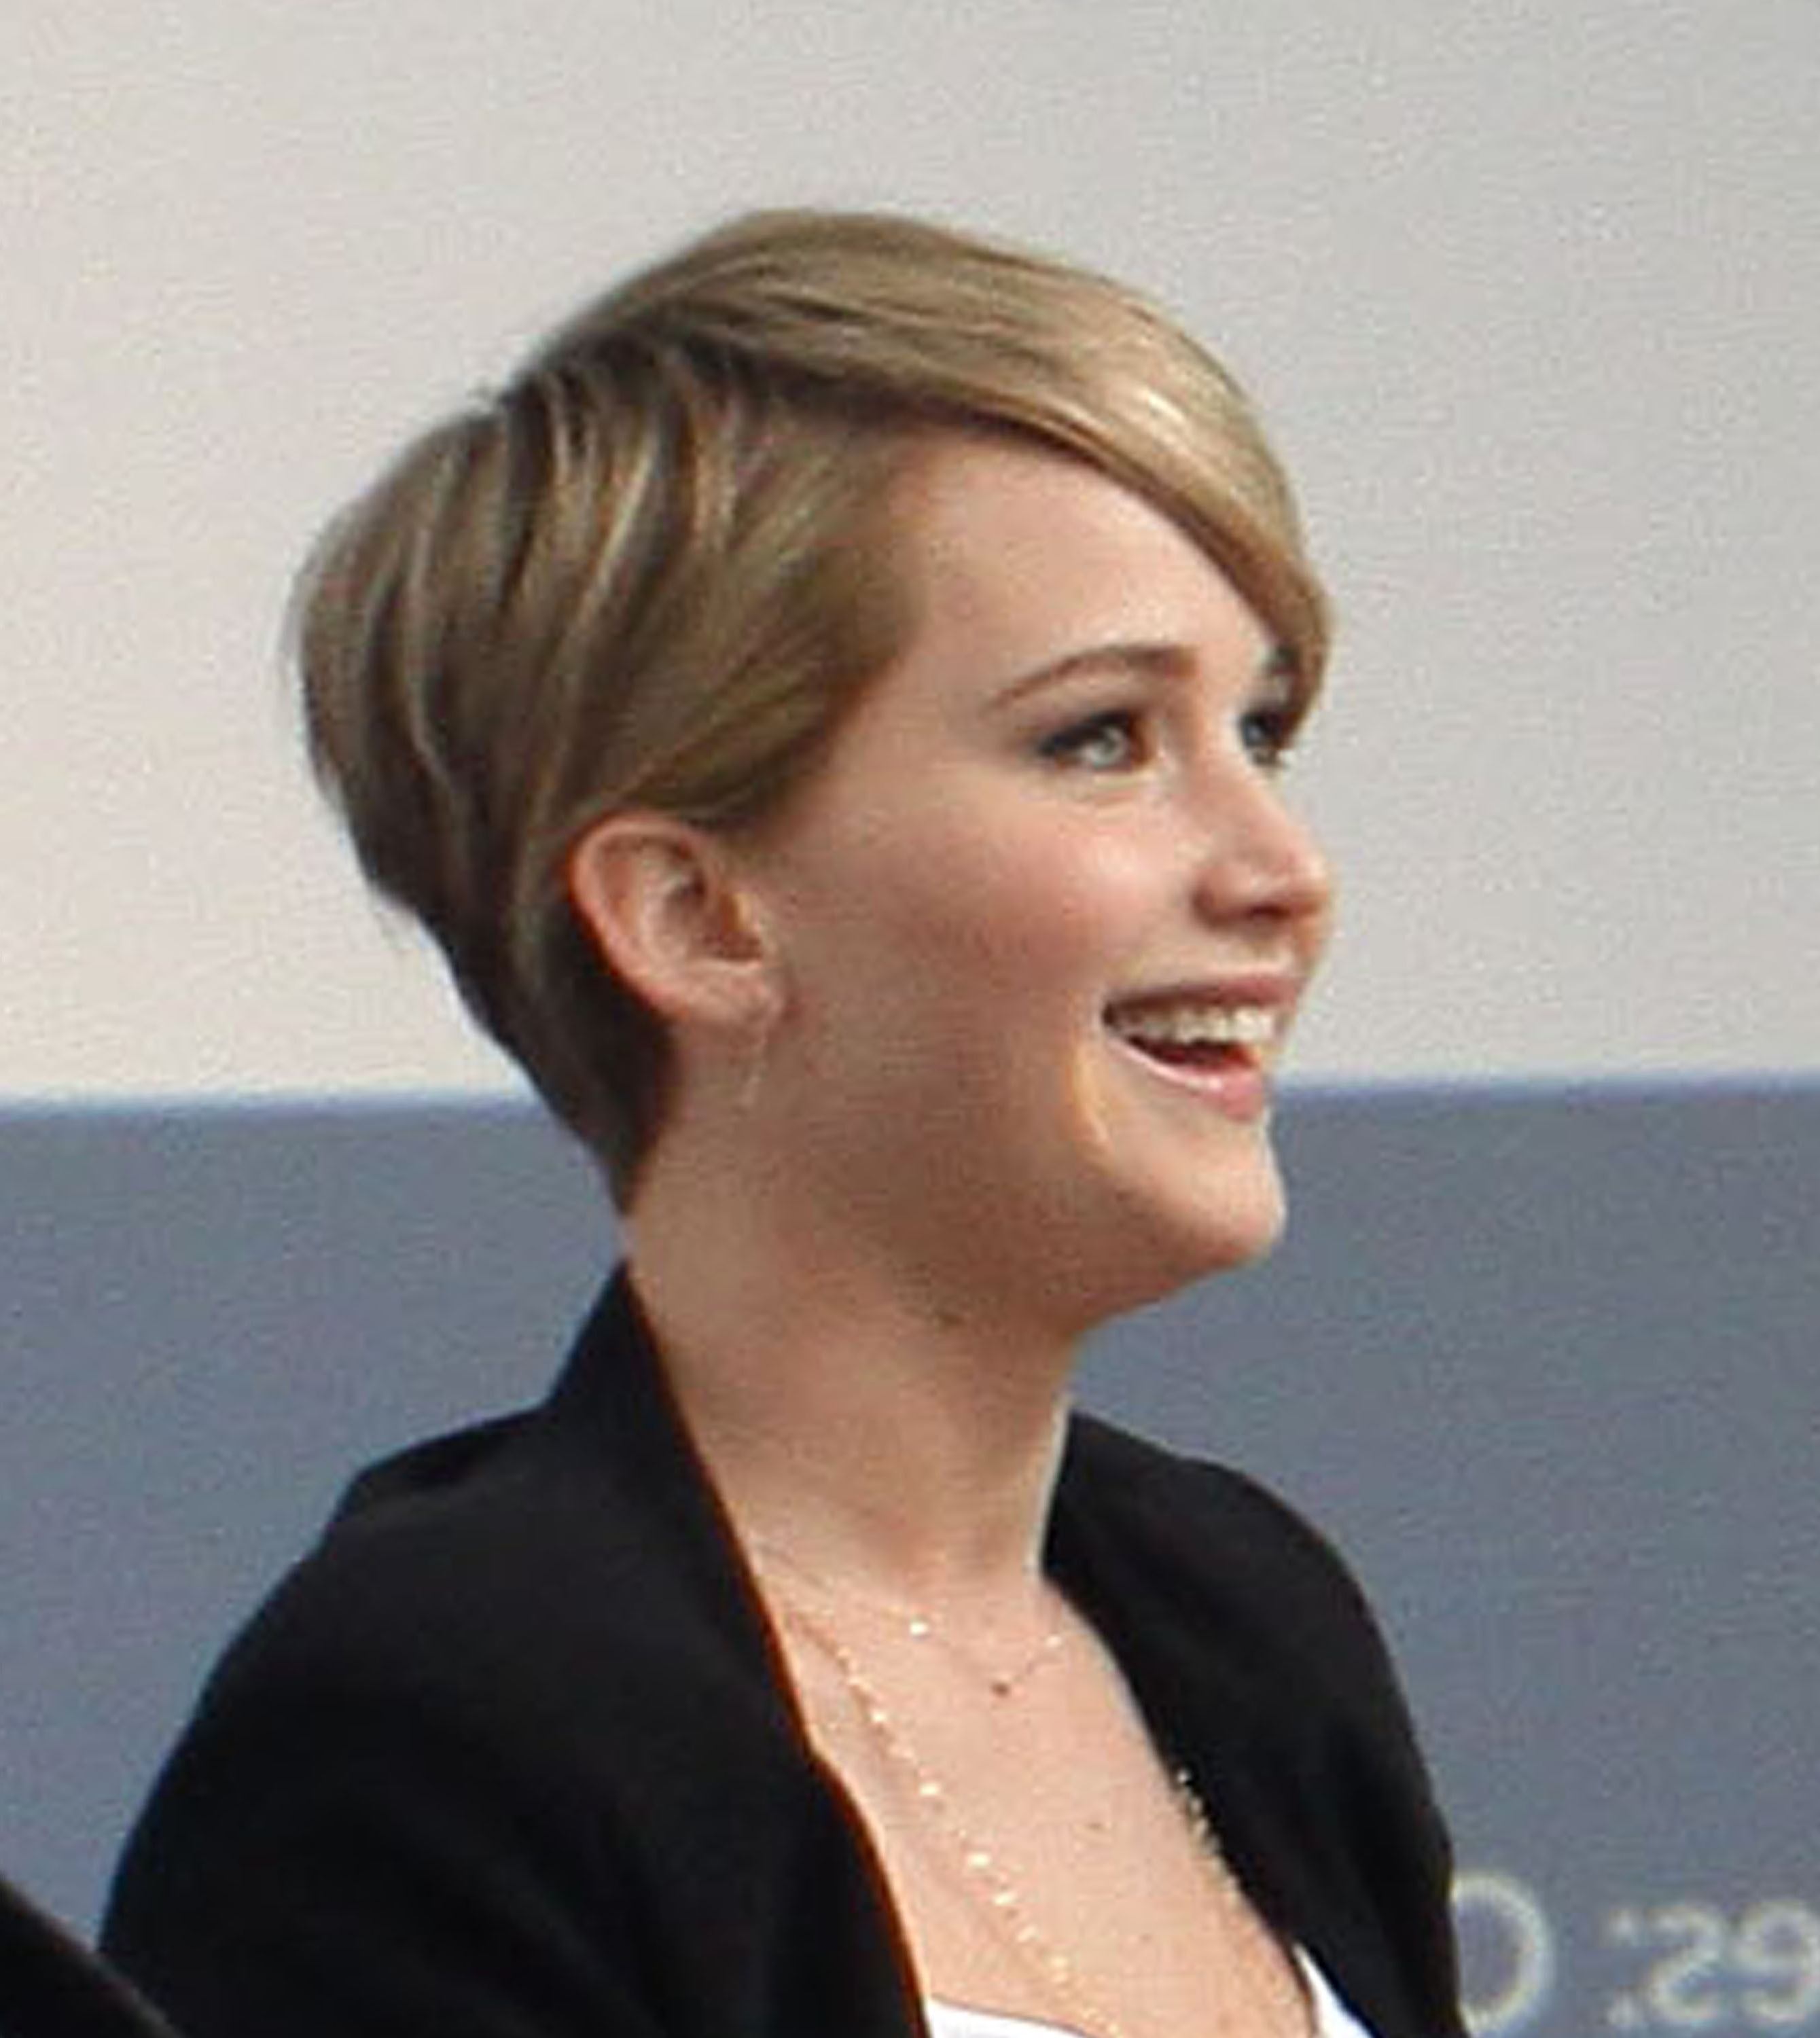 Jennifer Lawrence Shows Off Her Short Hair At Yahoo! Q&a – Jennifer Intended For Jennifer Lawrence Short Haircuts (View 8 of 25)